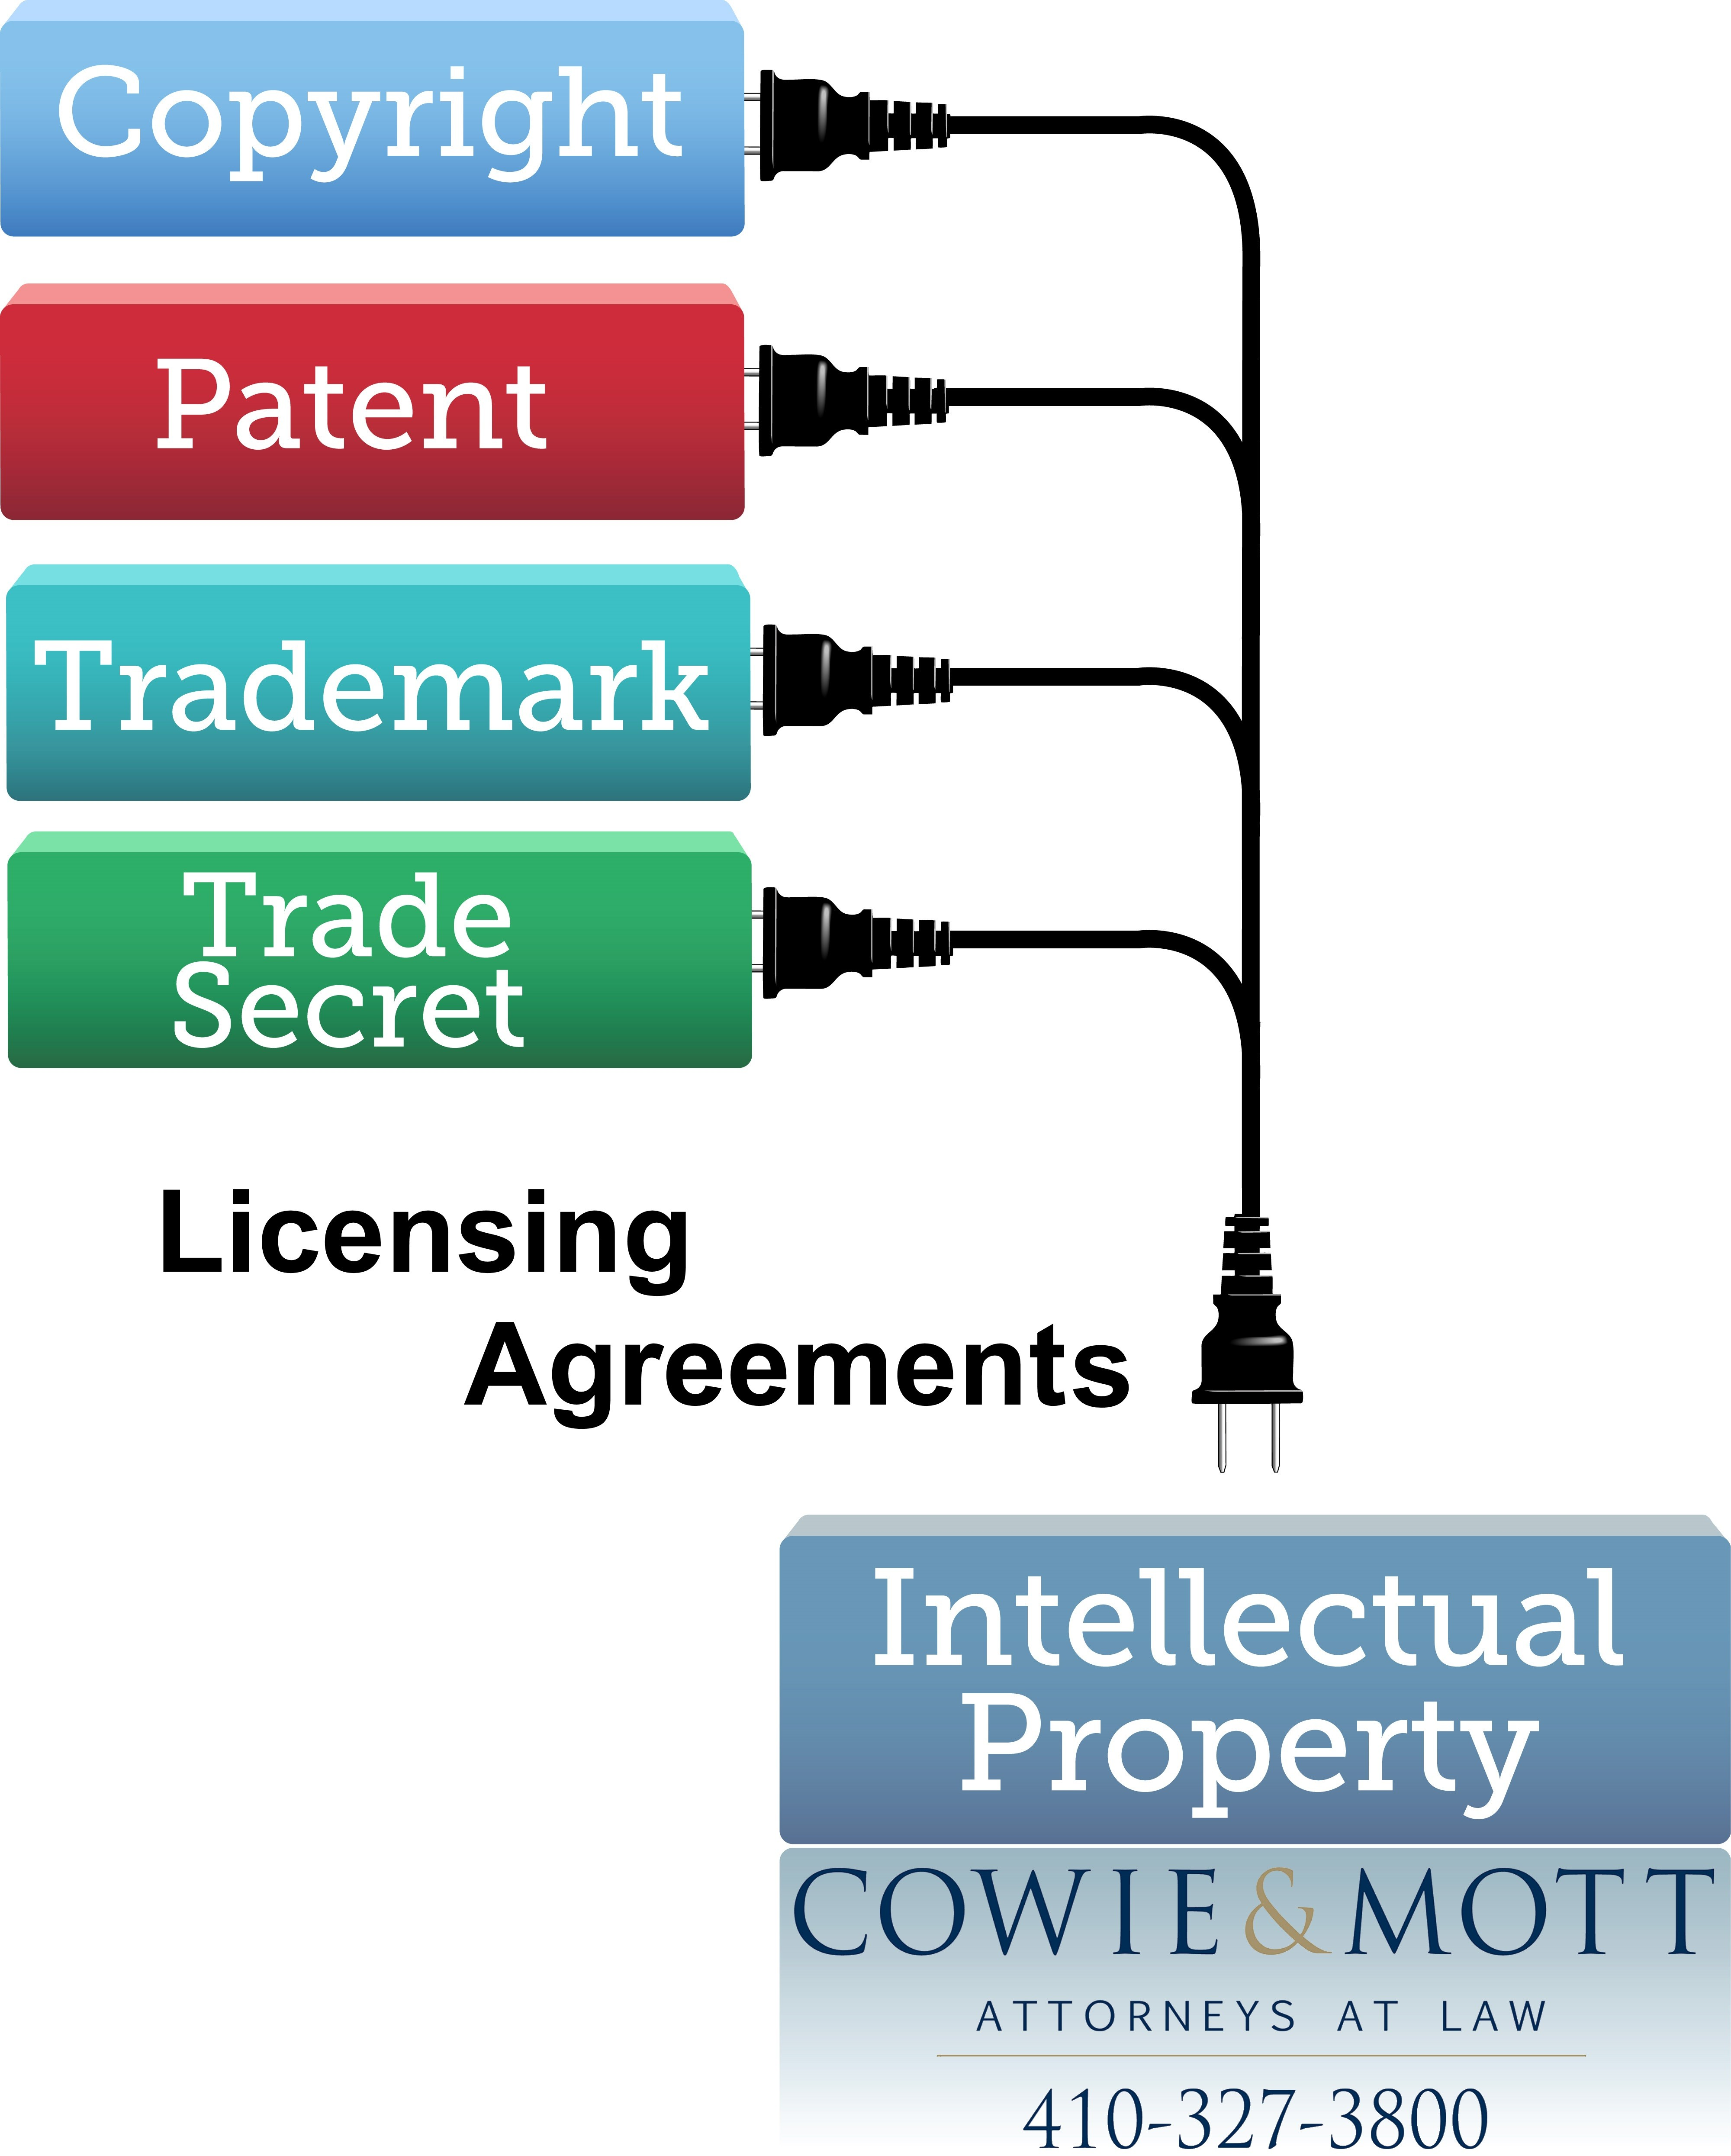 Intellectual Property Trademark Cases